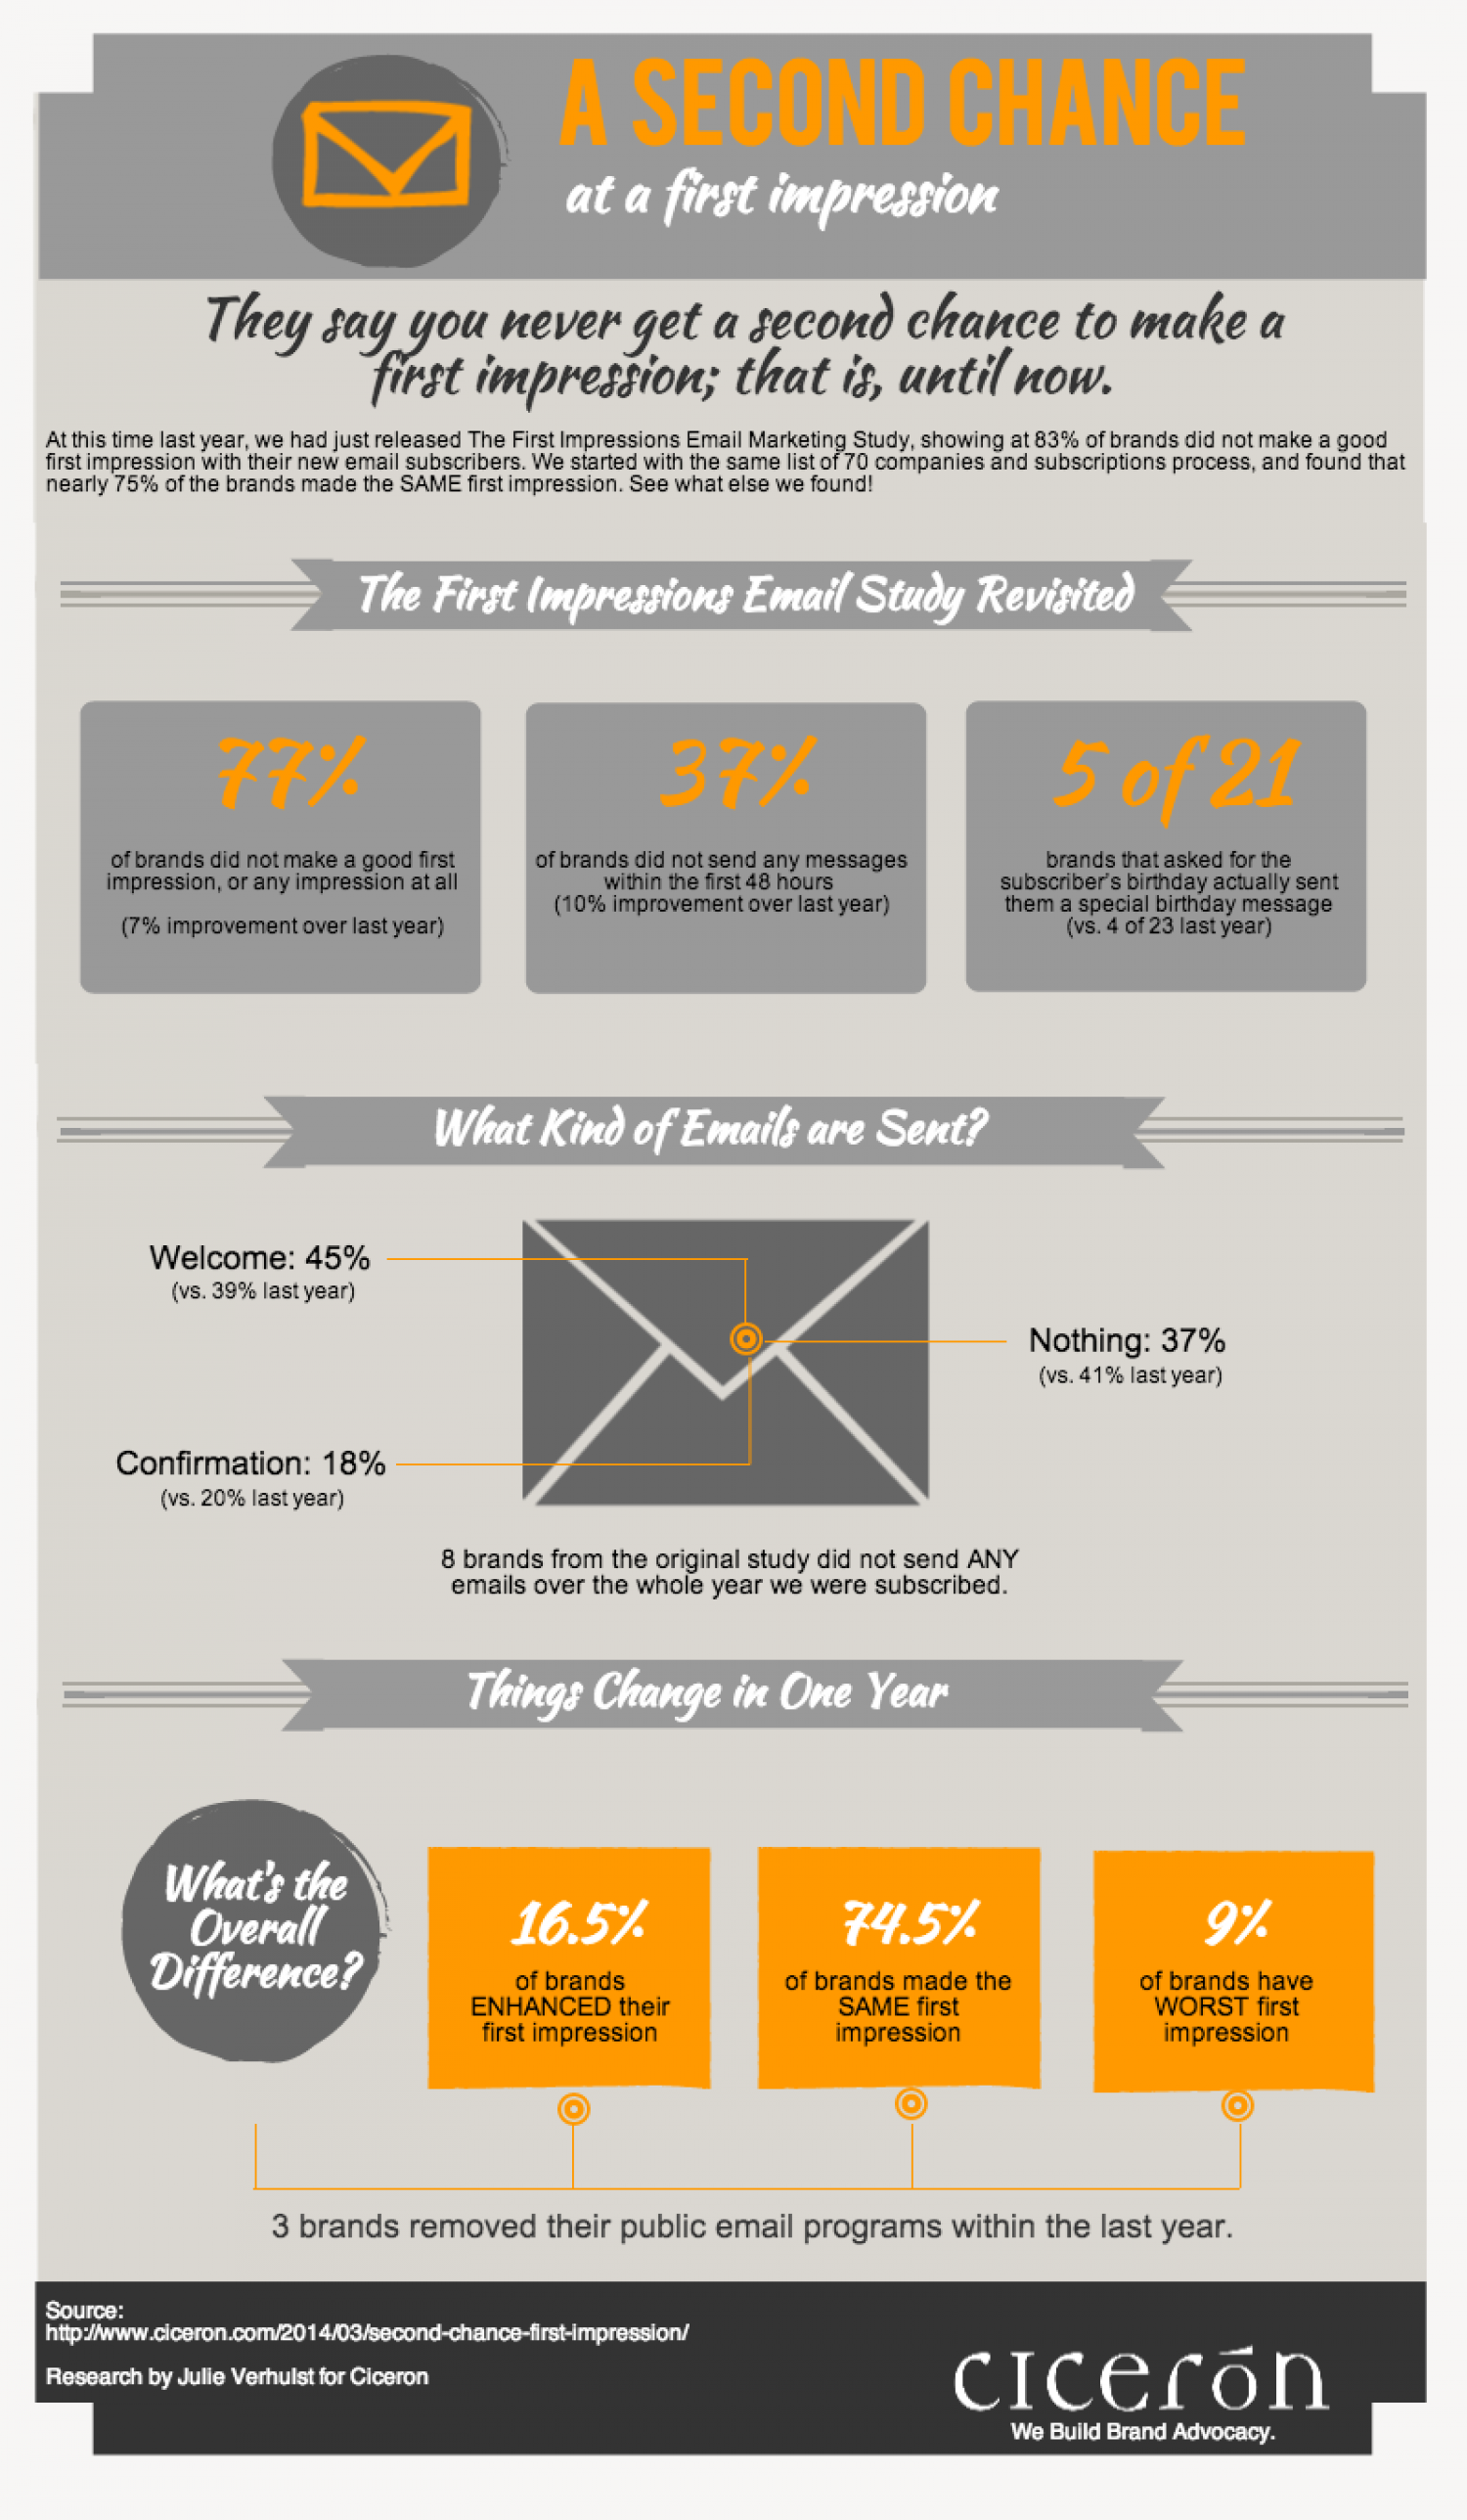 A Second Chance at an Email Marketing First Impression Infographic